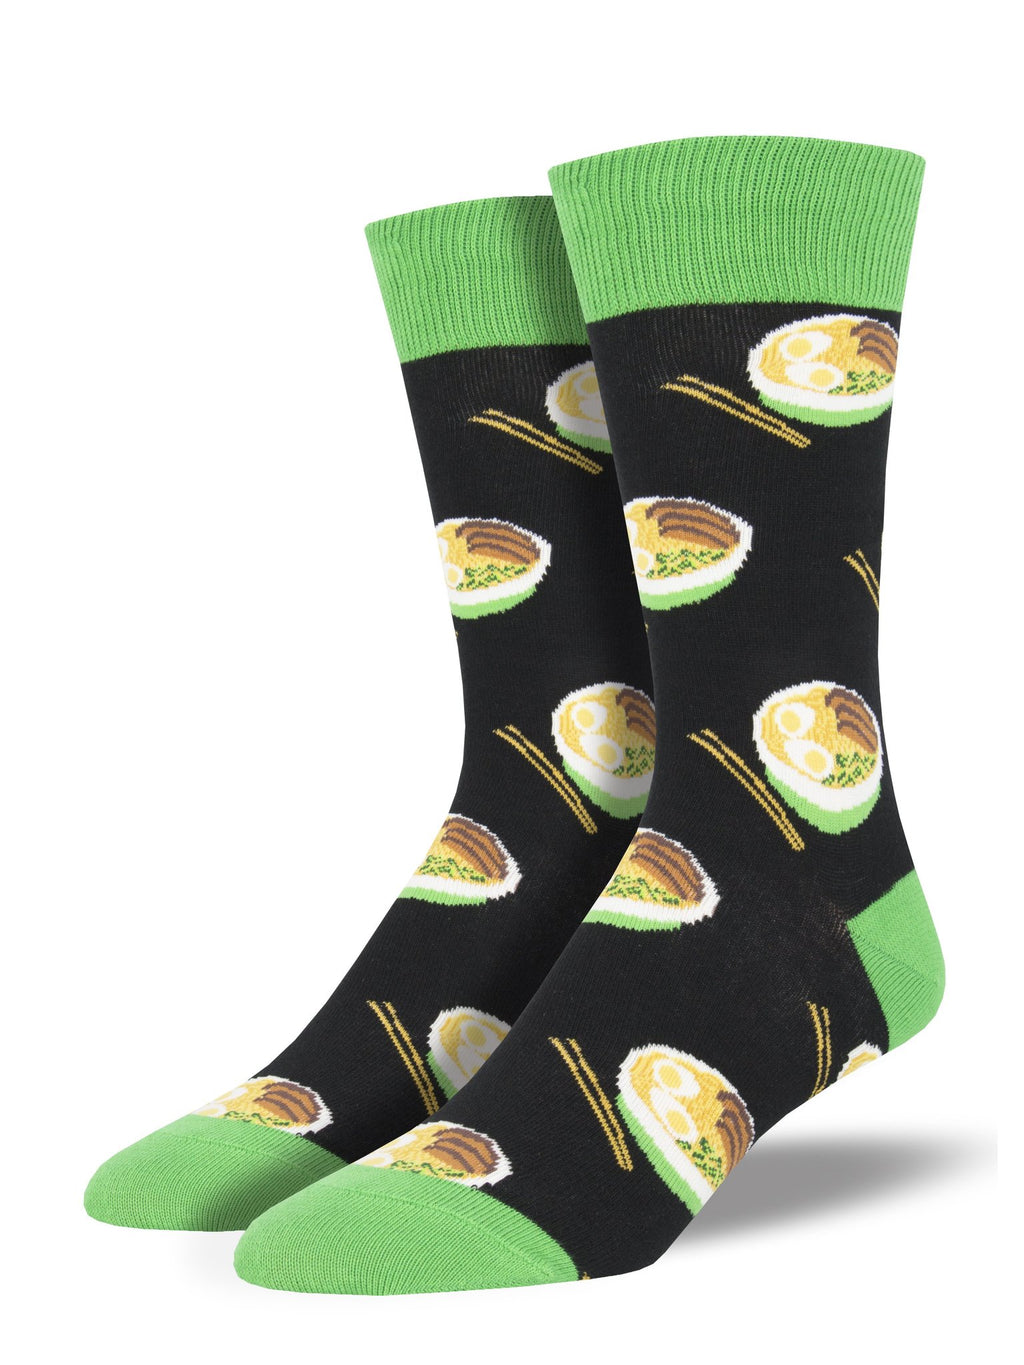 Use Your Noodle Black Men's Socks